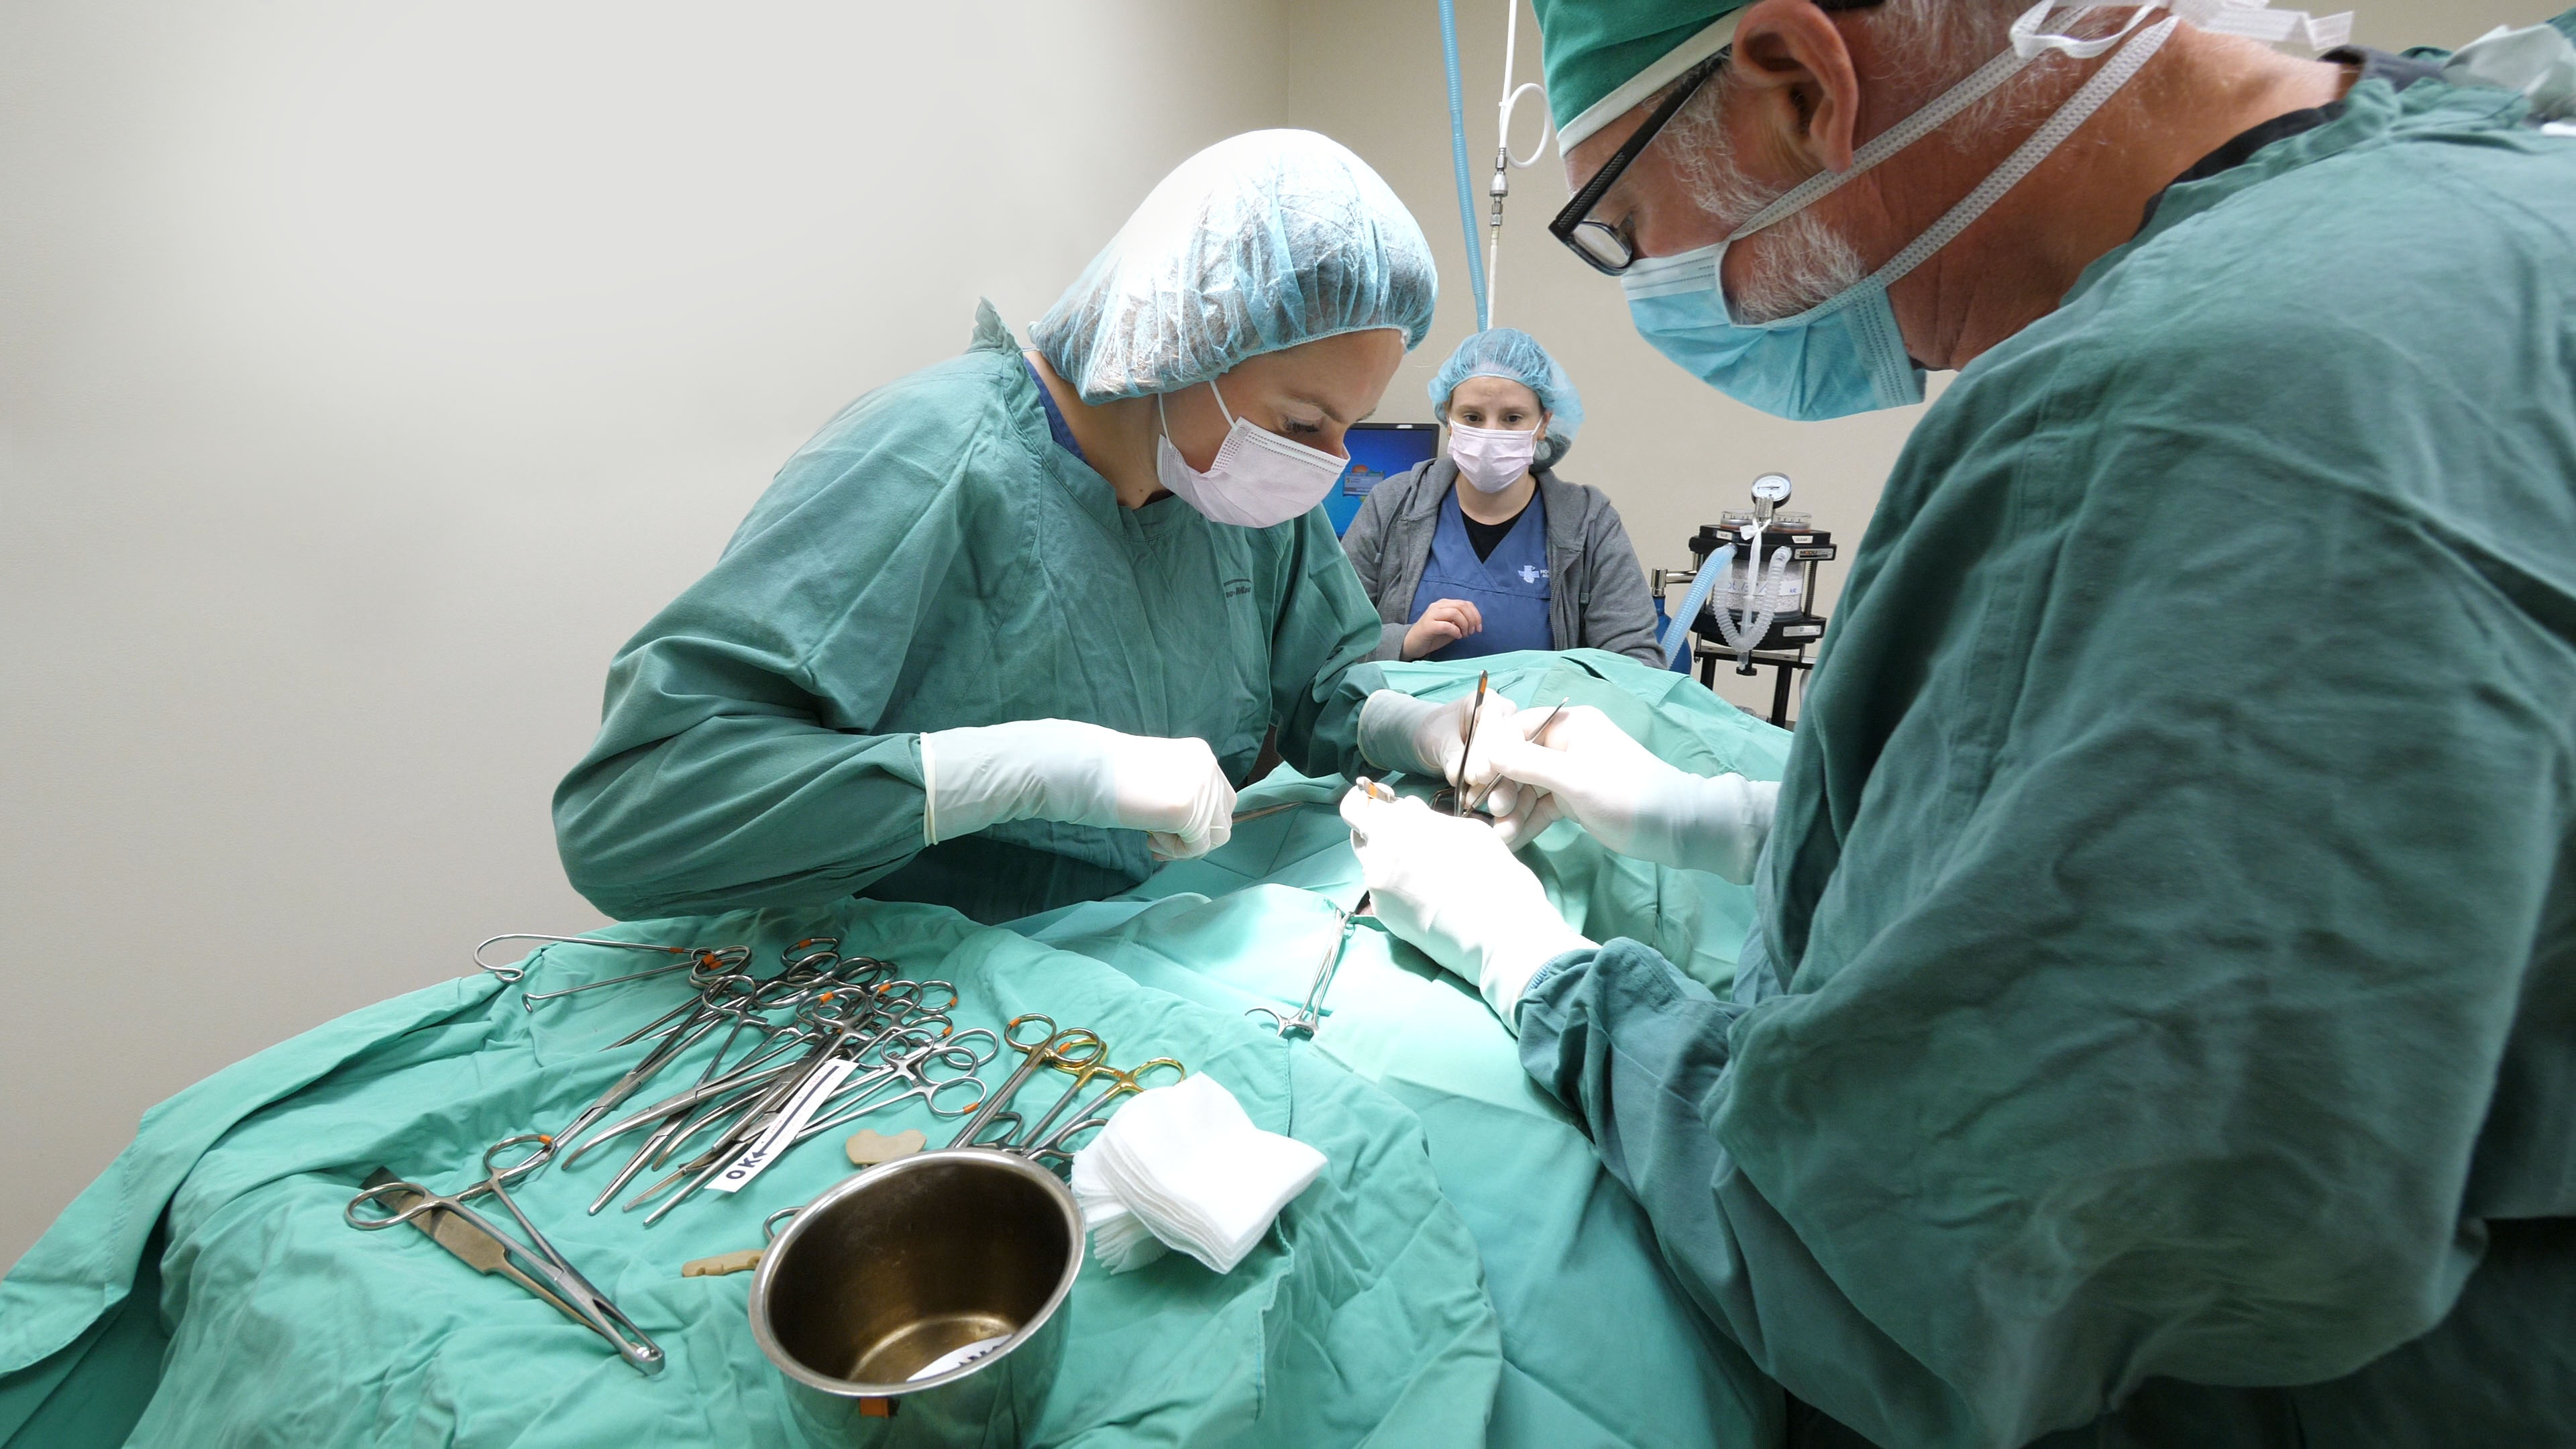 Veterinarians performing surgery